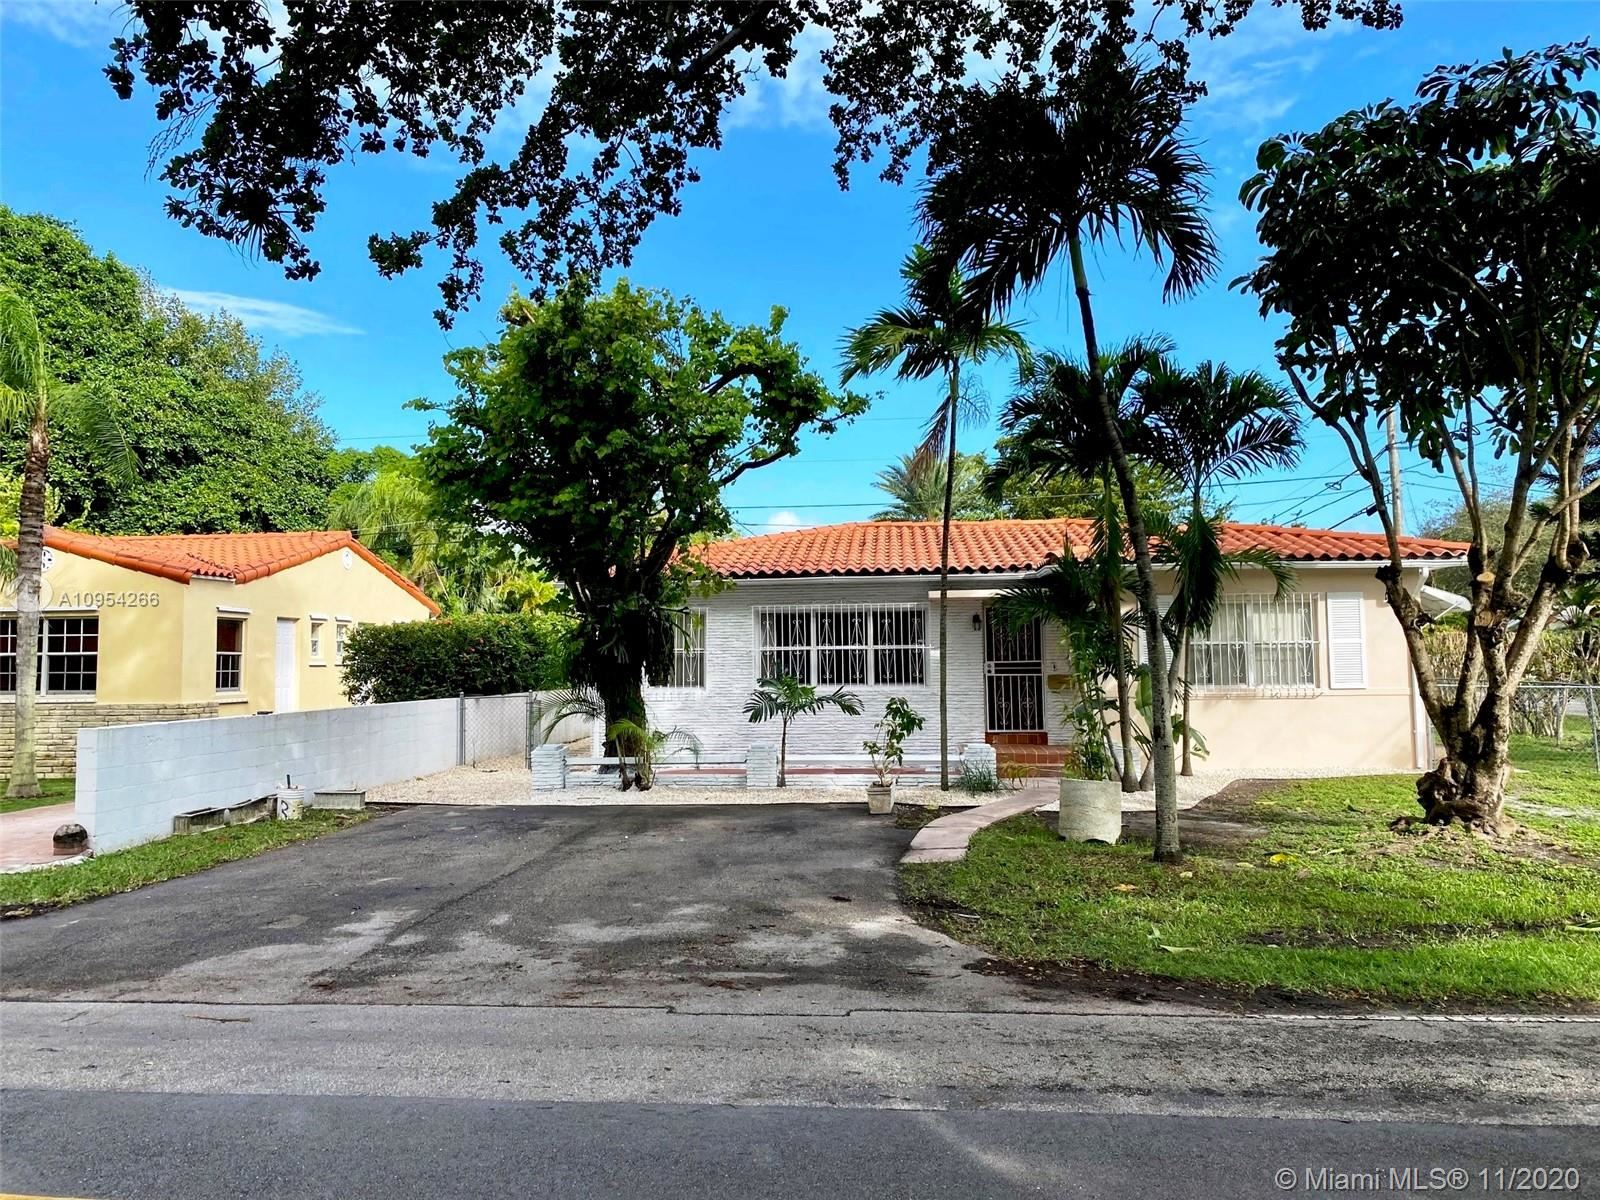 4401 SW 16th St, Miami, FL 33134 - #: A10954266